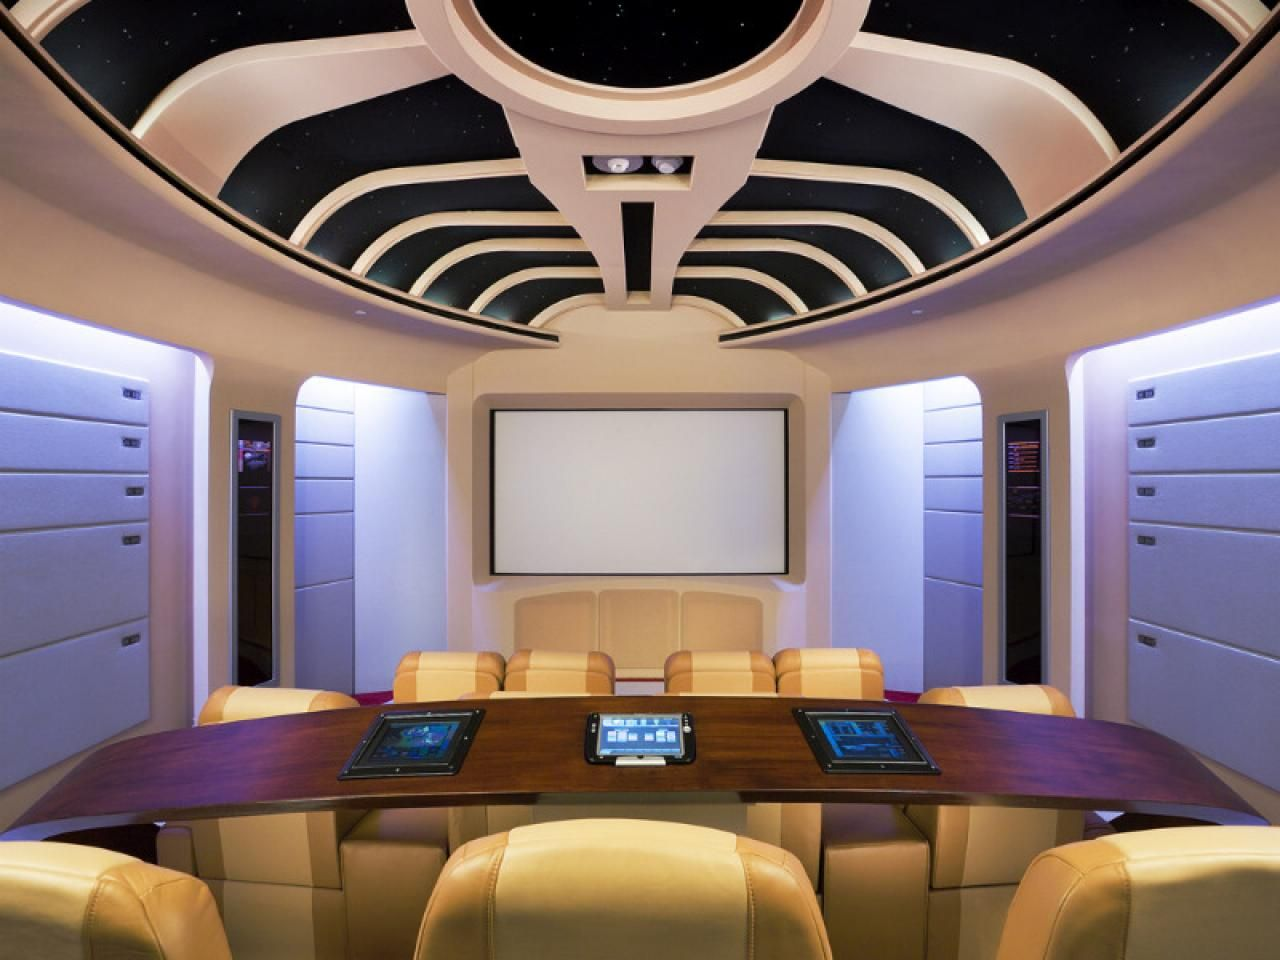 Designer home theaters media rooms inspirational pictures hgtv basements and remodeling ideas - Diy home theater design idea ...